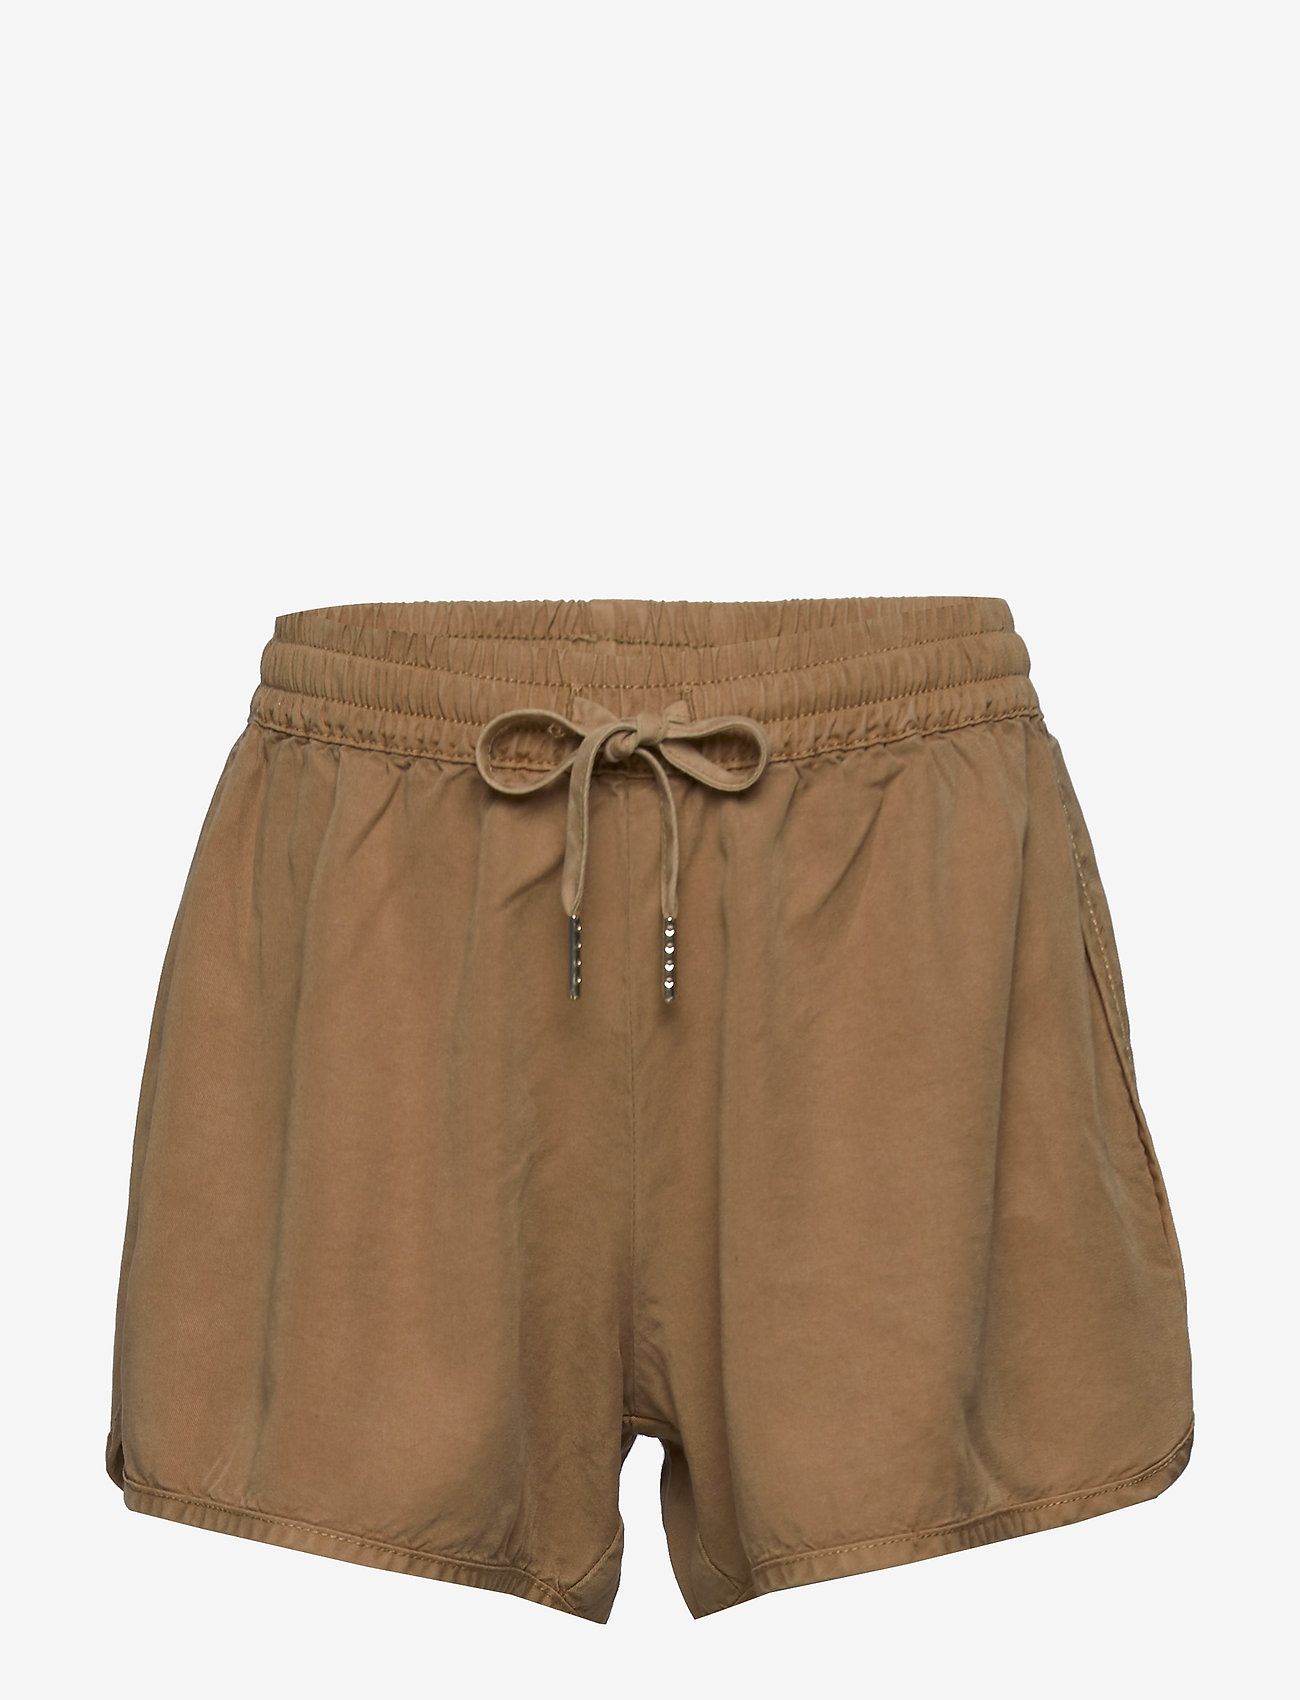 Petit by Sofie Schnoor - Shorts - shorts - camel - 0